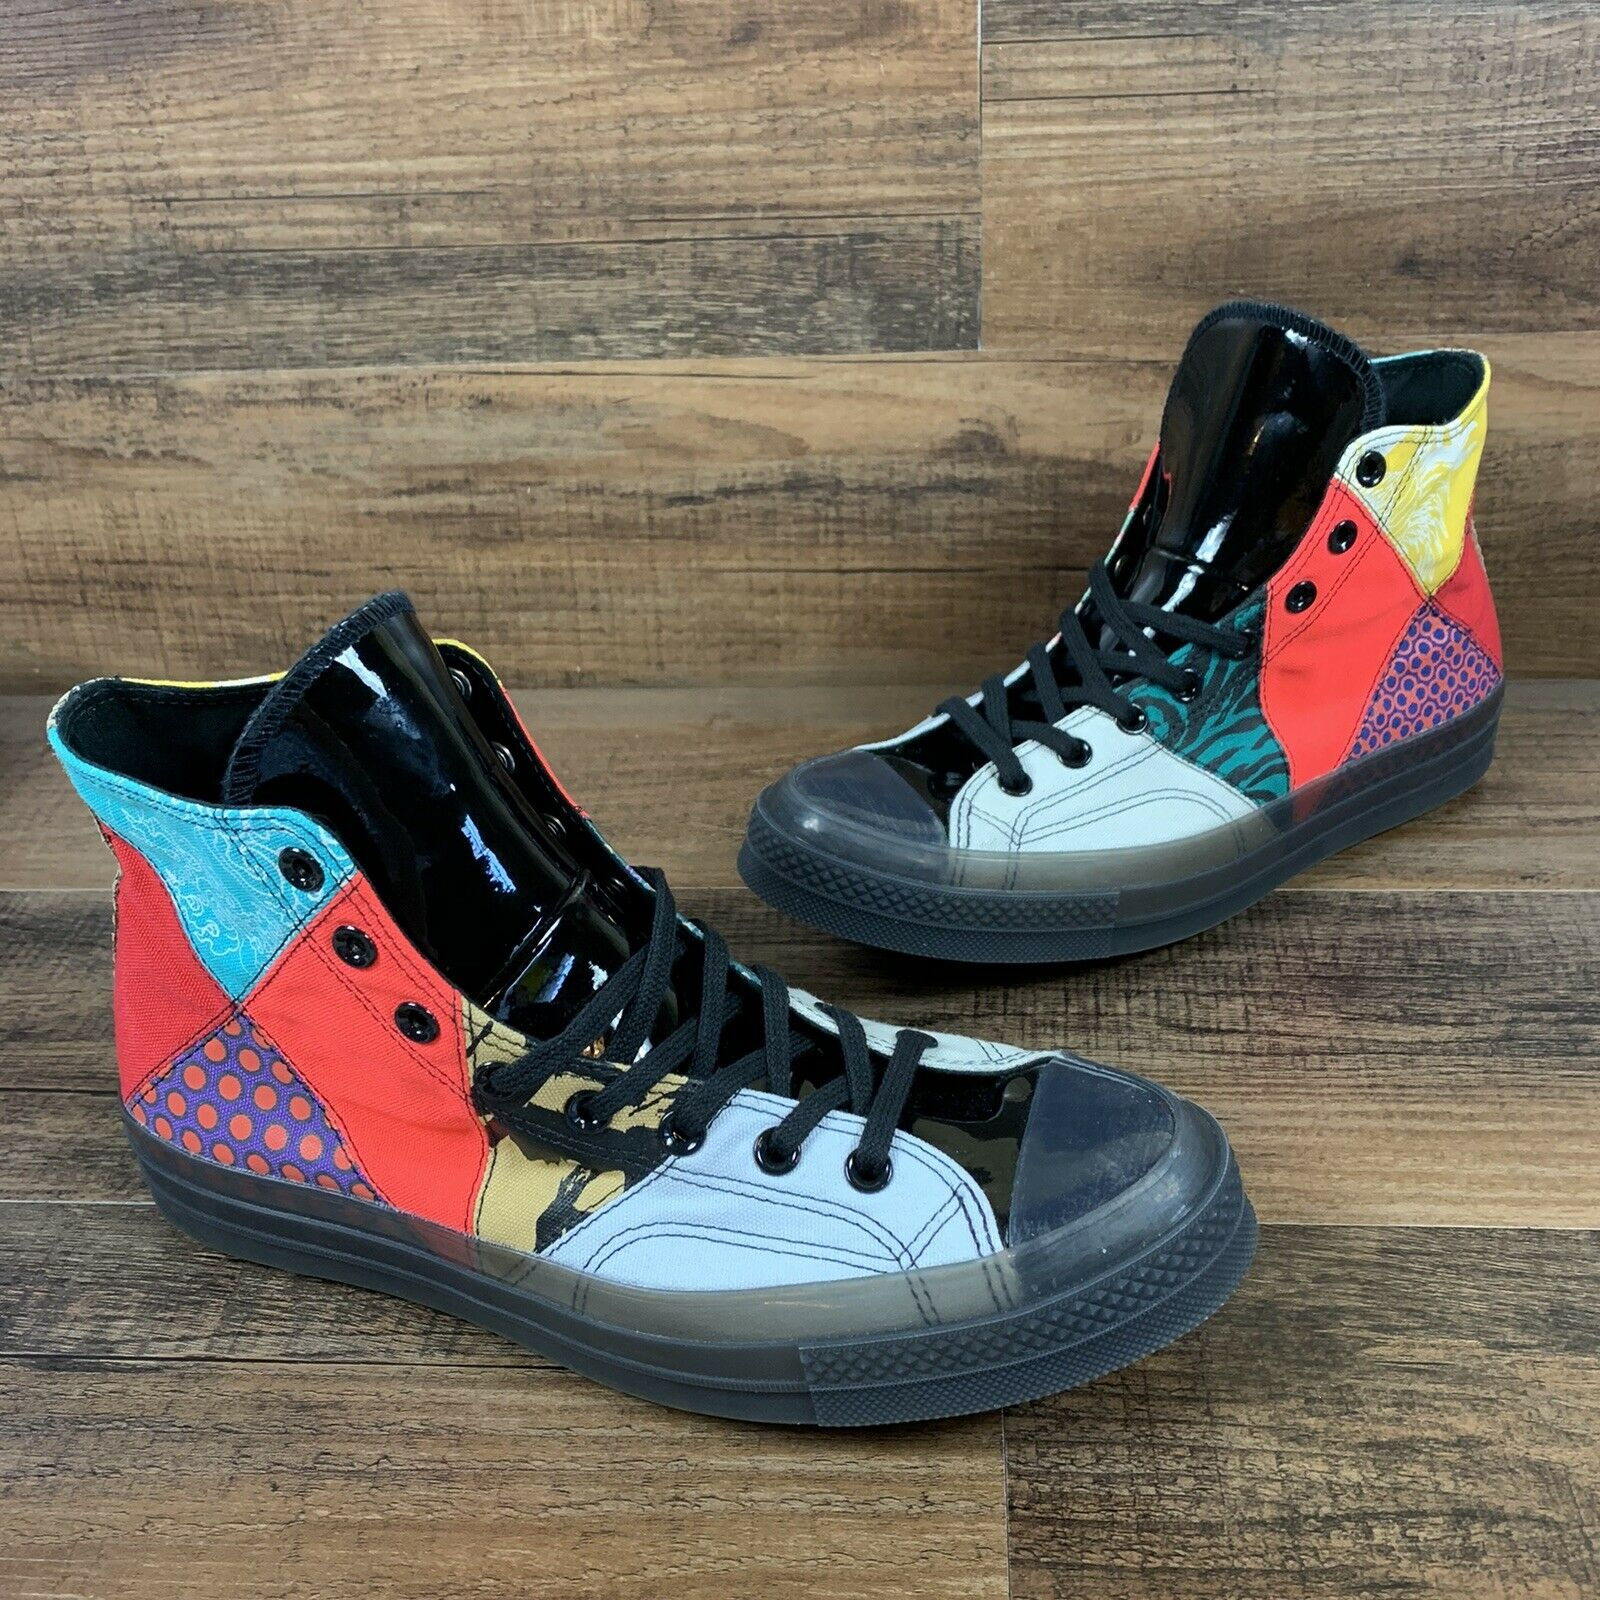 Converse Chuck Taylor All Star 70s Hi Chinese New Year